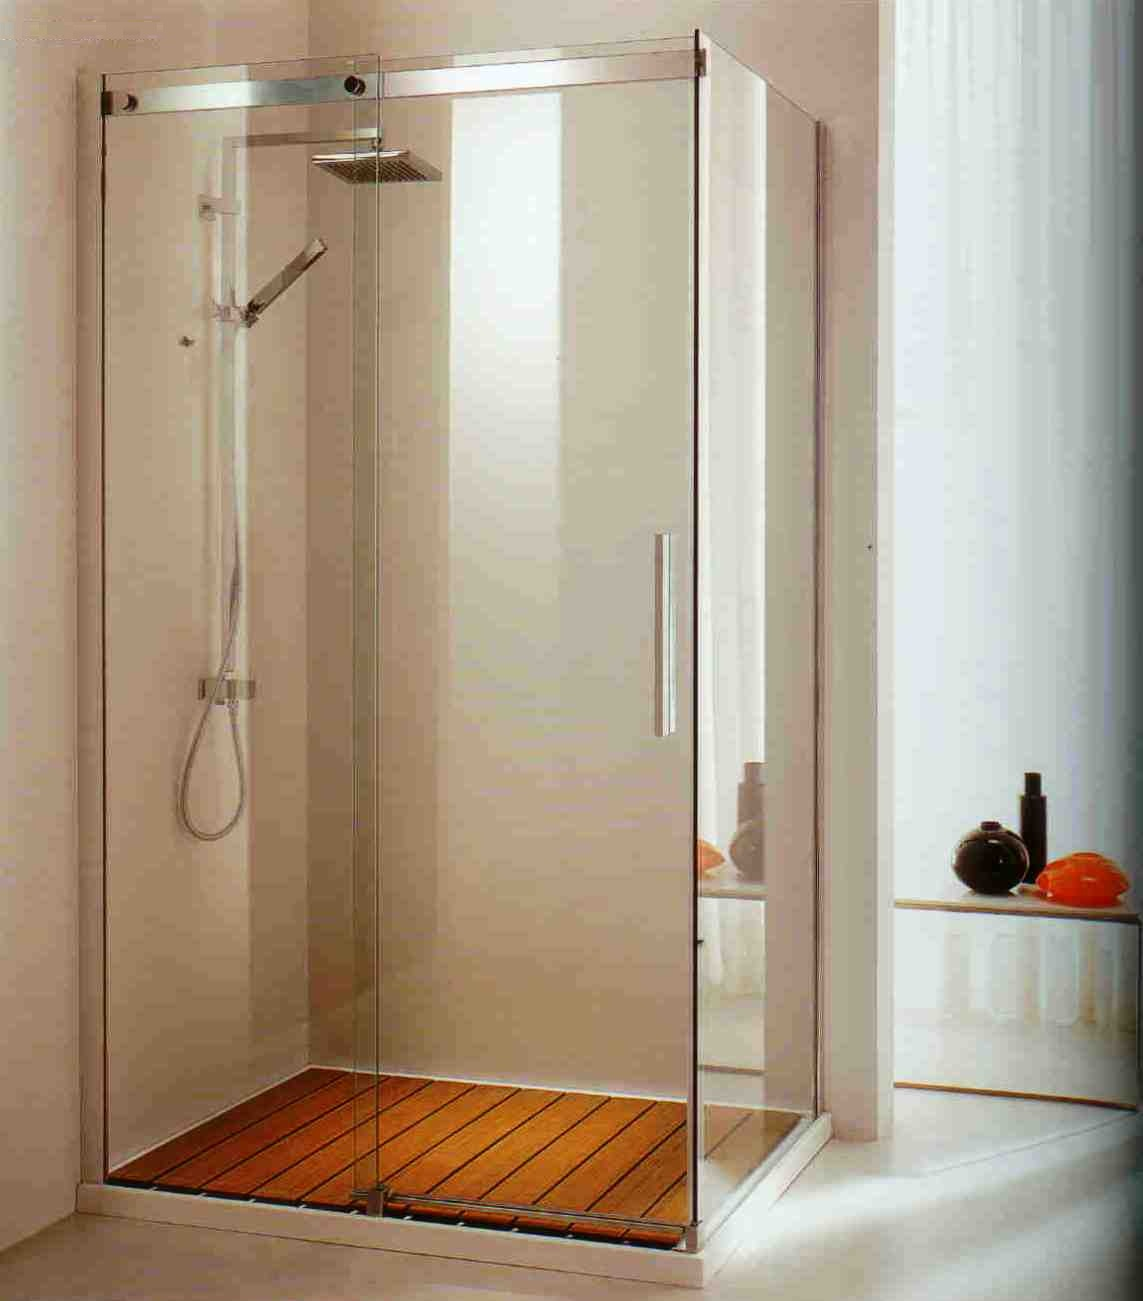 Buy Odele Shower Set 7201 | Lowest Price Guaranteed